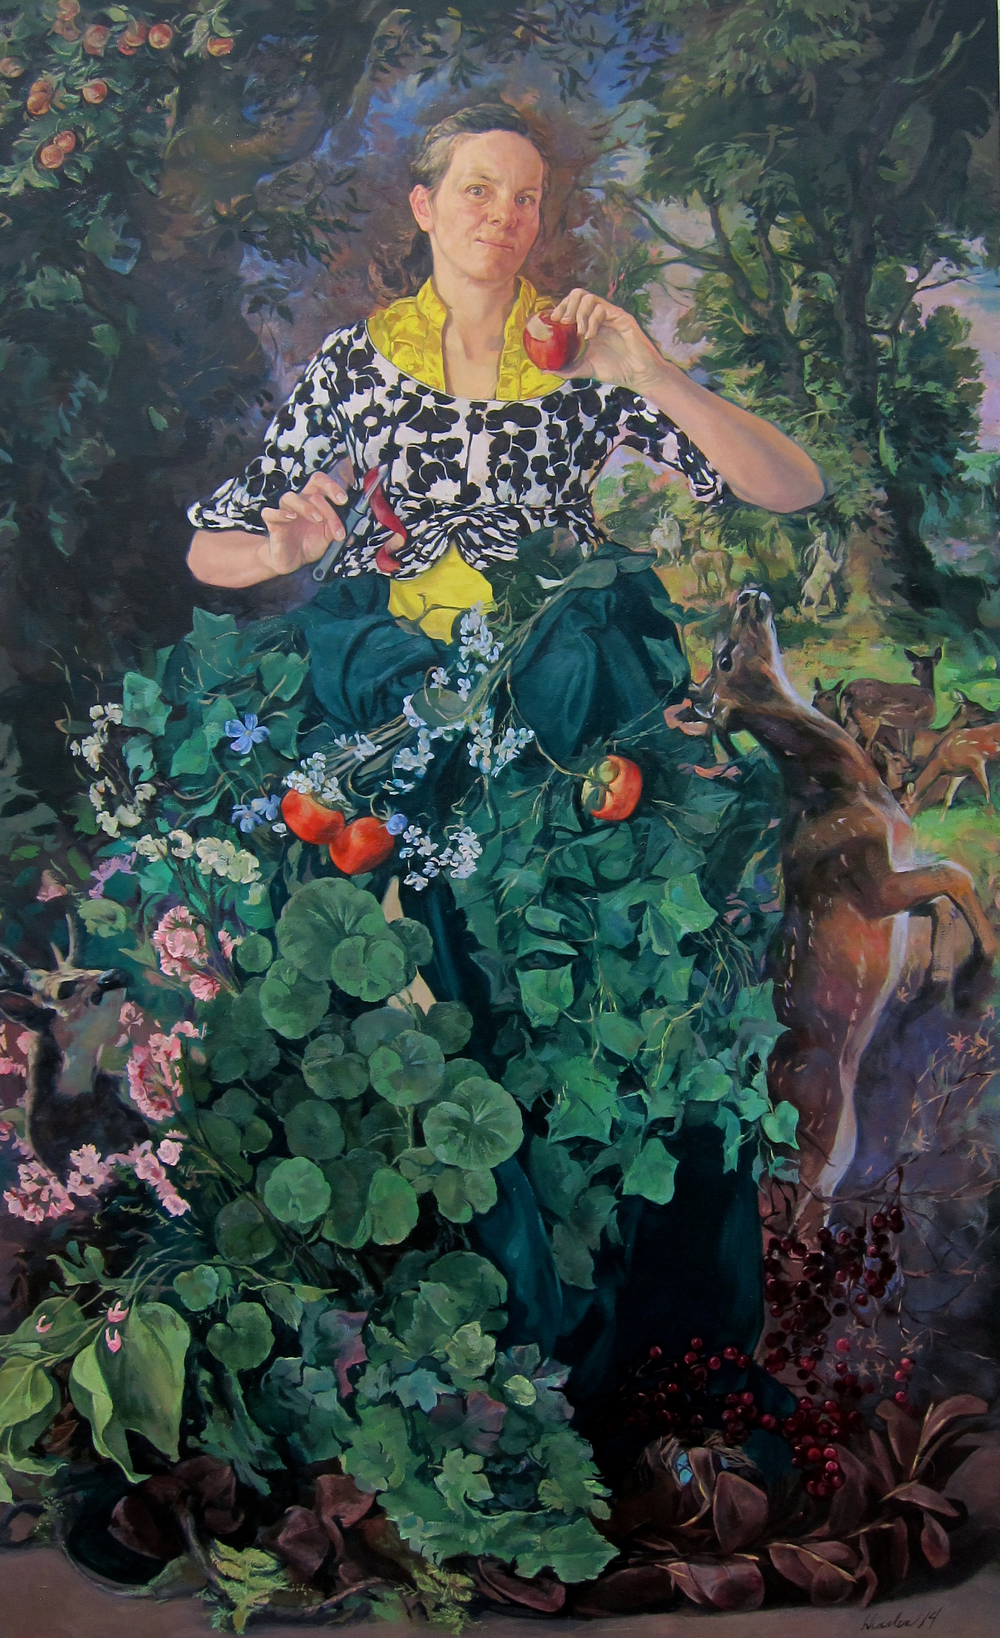 Eve II,  2014 oil on canvas, 72 x 44 inches